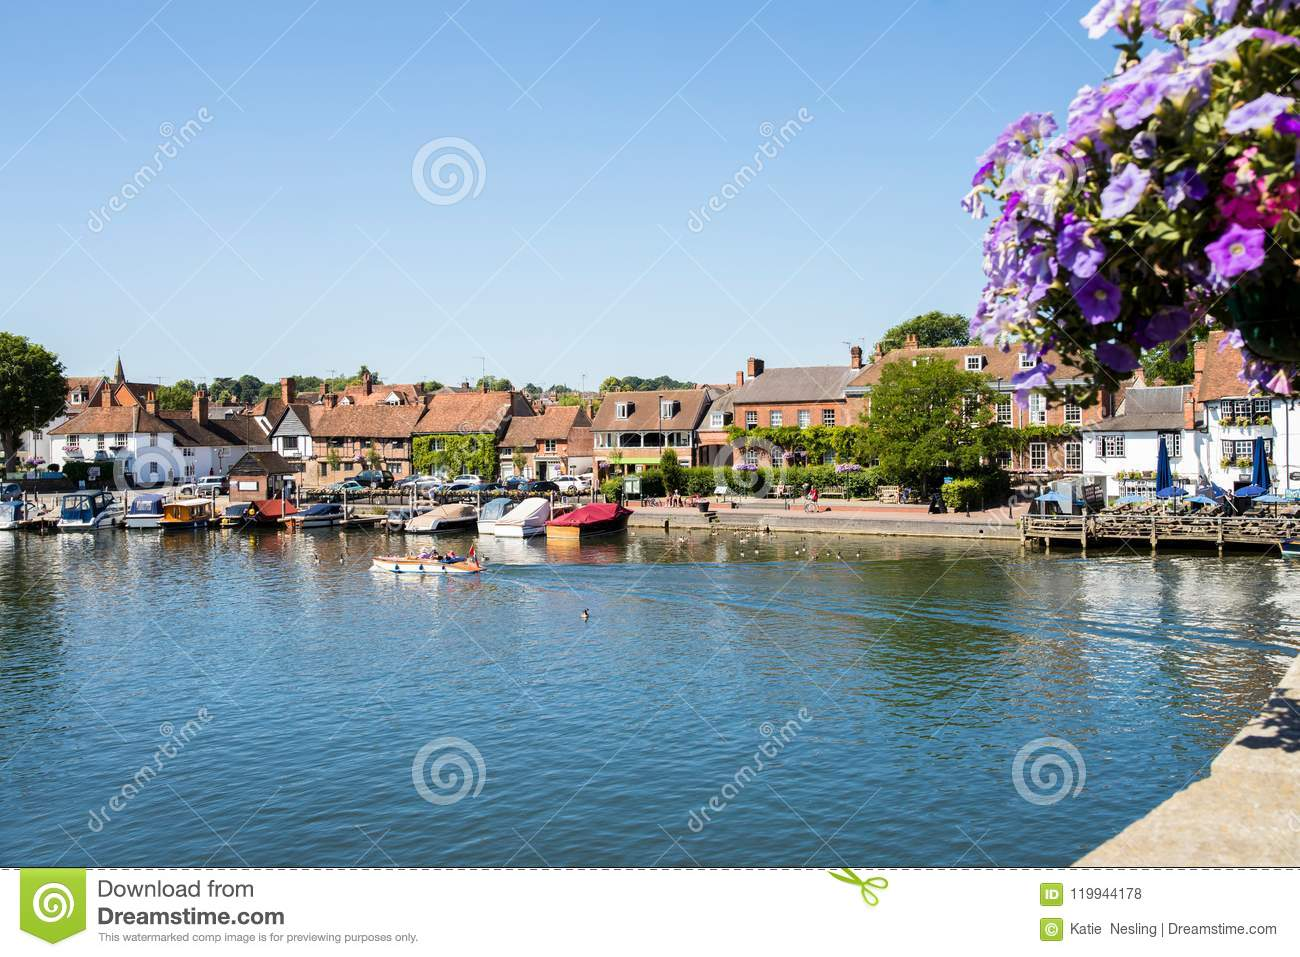 Skyline Of Henley On Thames In Oxfordshire UK With River Thames